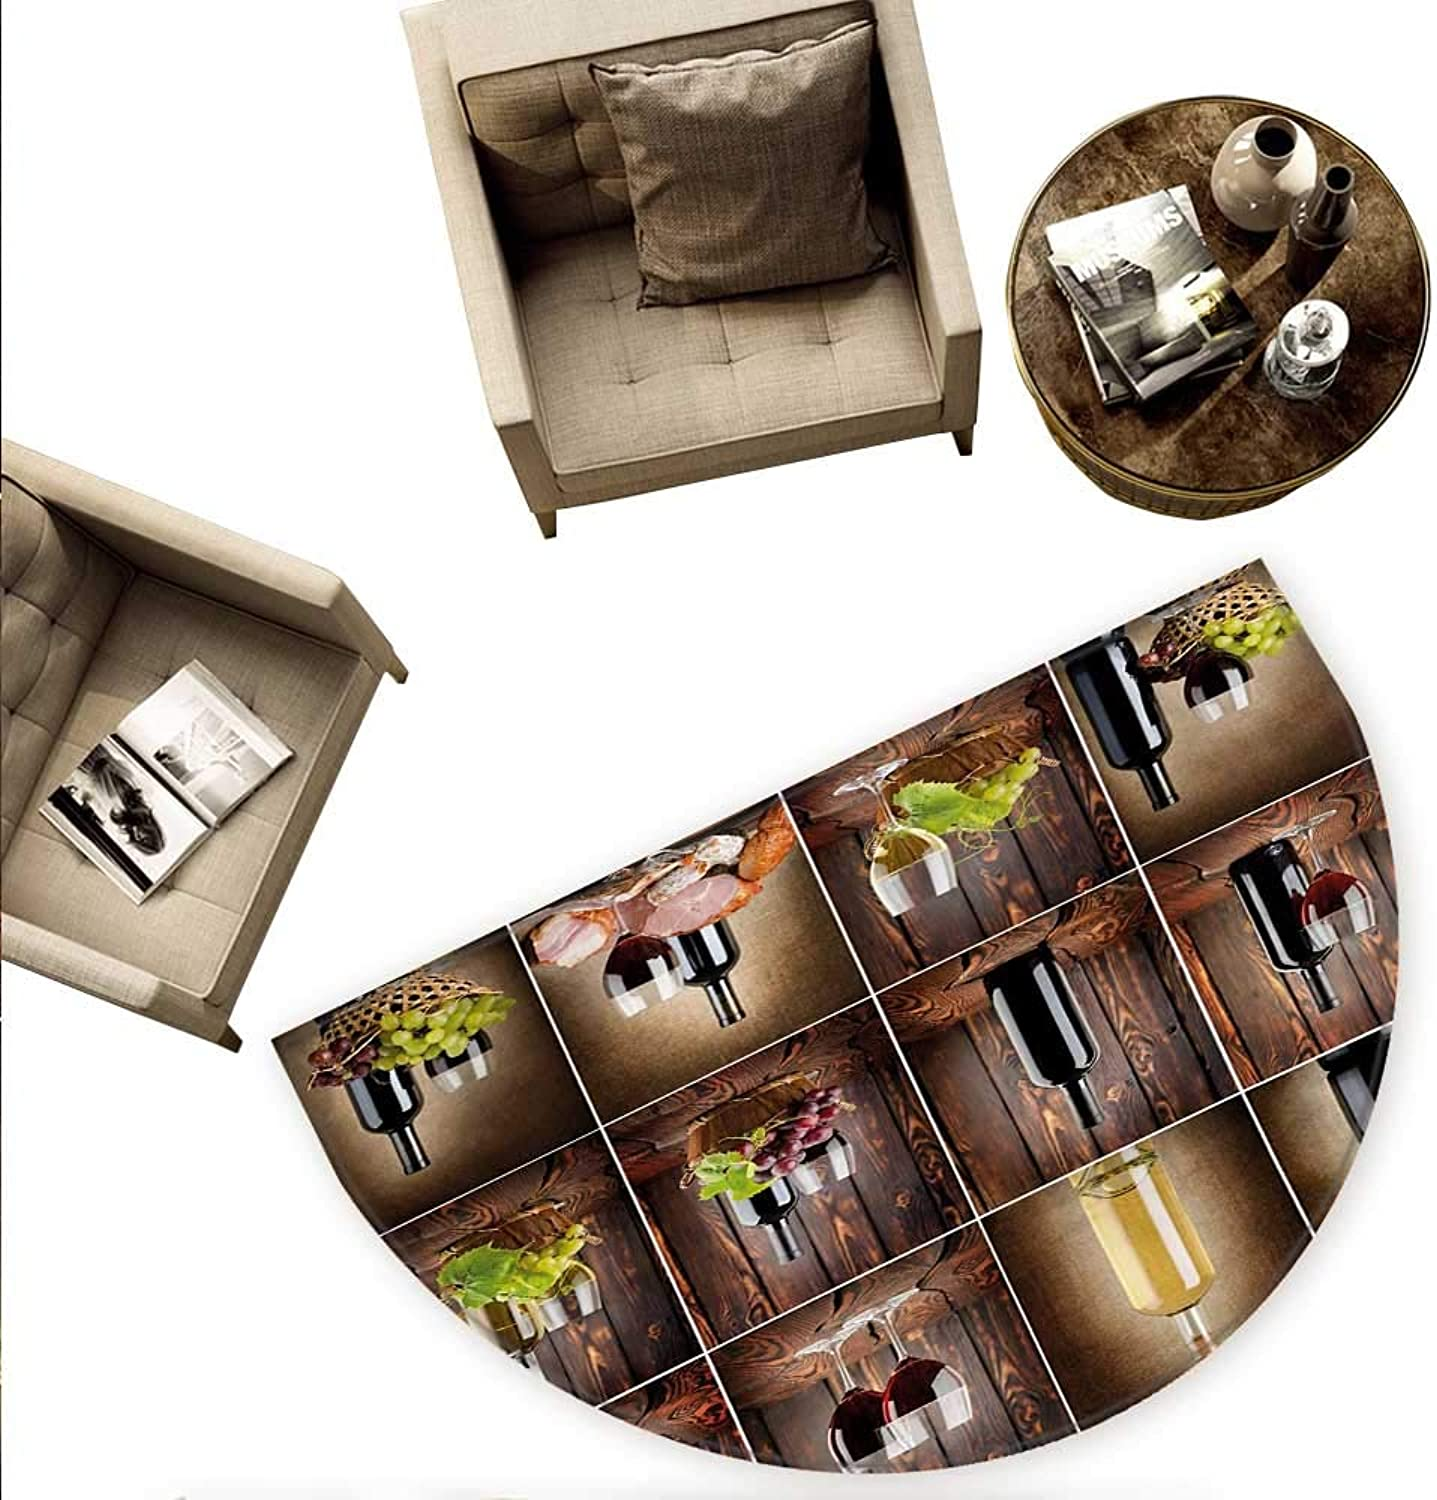 Wine Semicircular Cushion Wine Themed Collage on Wooden Backdrop with Grapes and Meat Rustic Country Drink Entry Door Mat H 70.8  xD 106.3  Brown Black Red